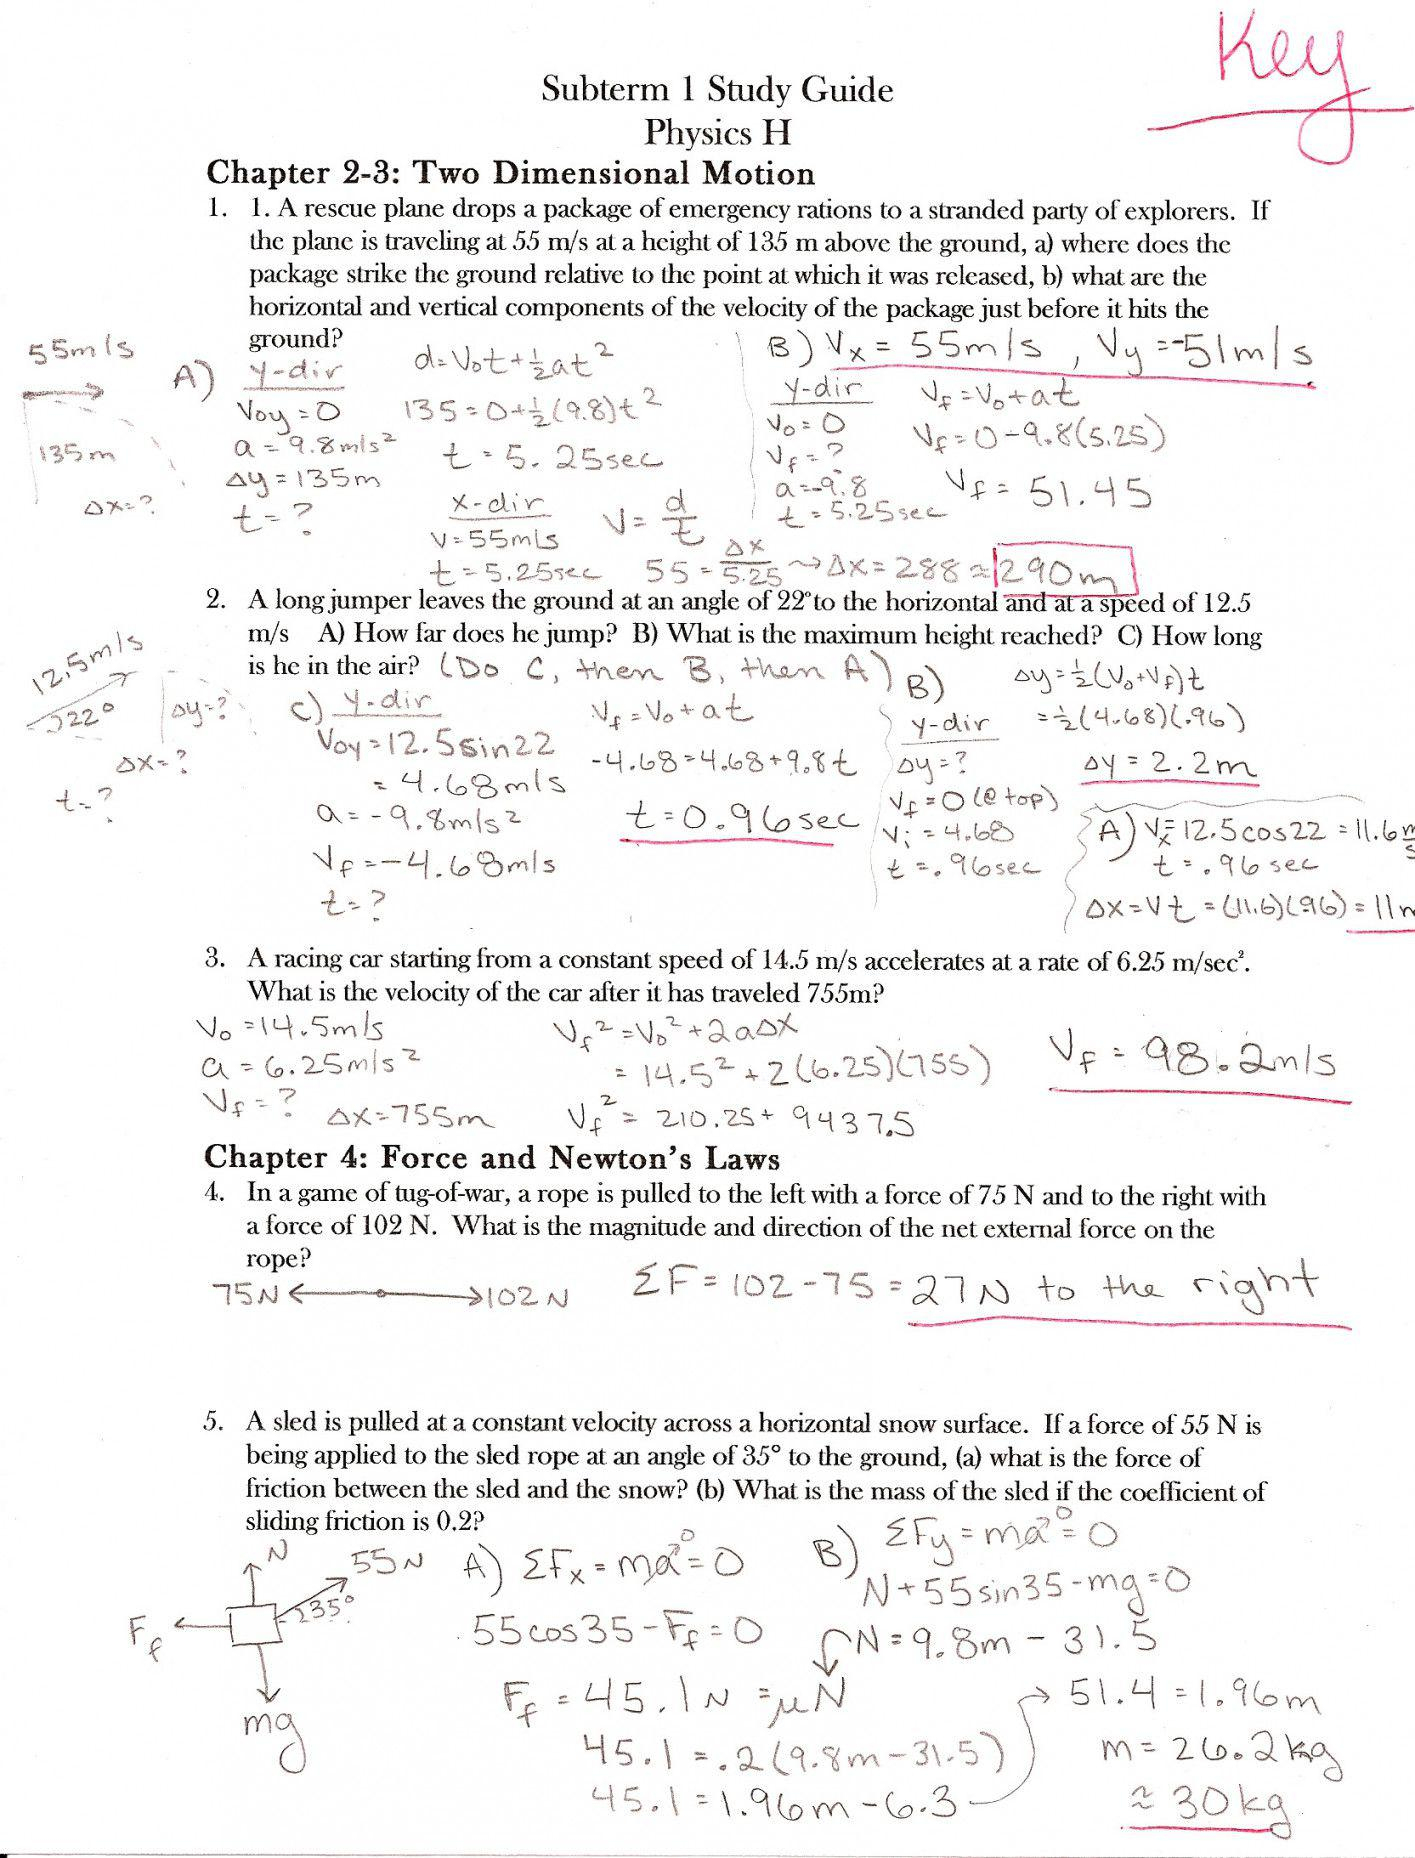 Coefficient Of Friction Worksheet Answers   Lostranquillos - Free Printable Physics Worksheets